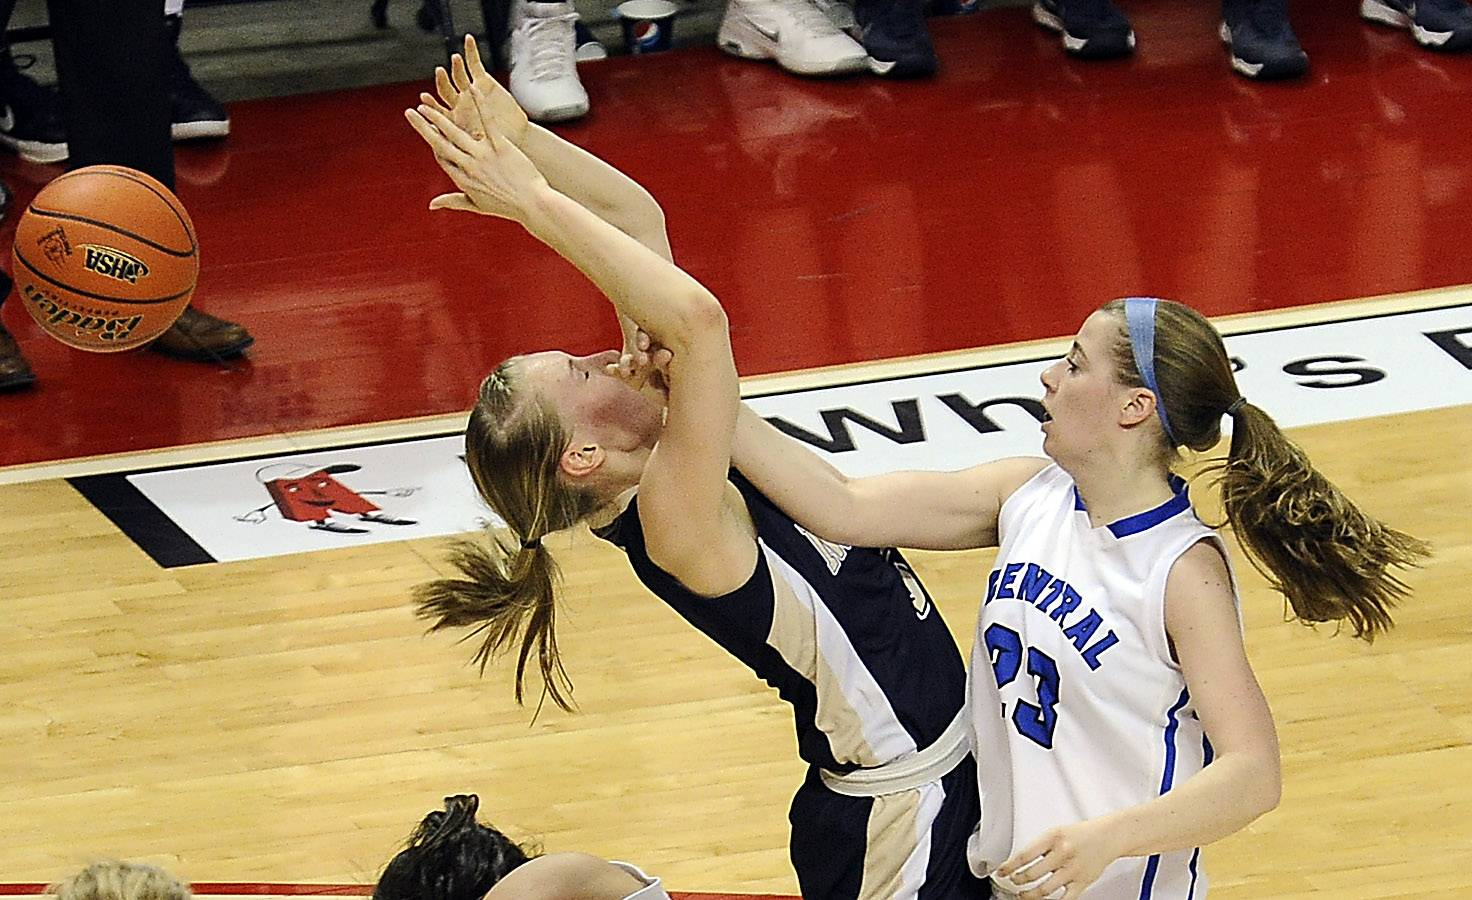 Burlington Central's Aly DeTamble delivers a shot to Quincy Notre Dame's Kristen Gengenbacher in the first period of girls state basketball in the third place game in Normal on Saturday.